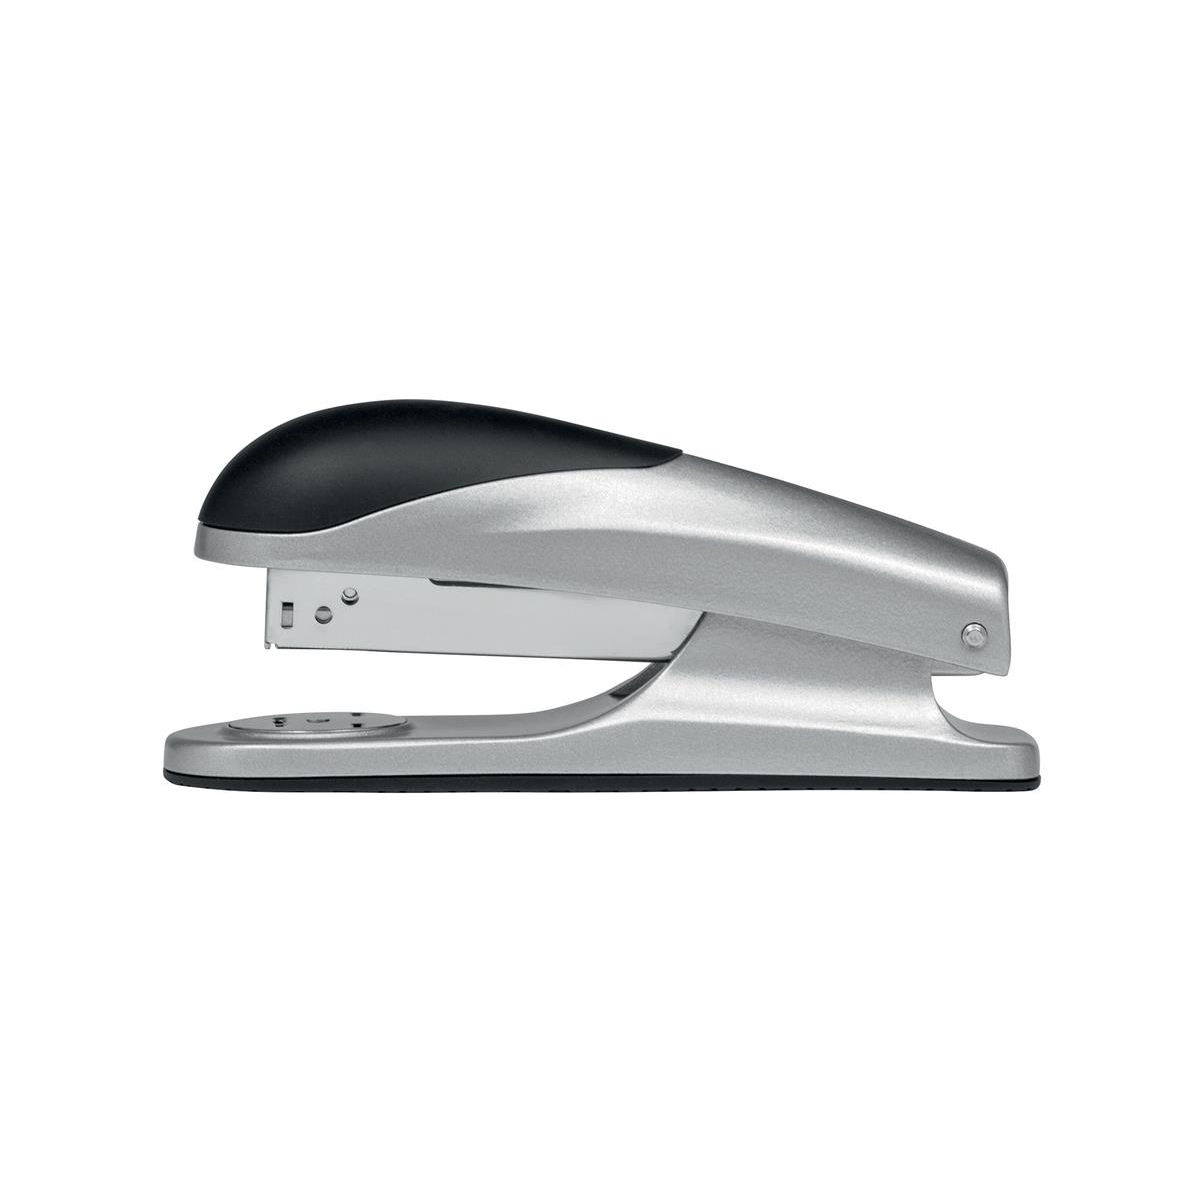 Image for 5 Star Elite Stapler Half Strip Capacity 20 Sheets Silver